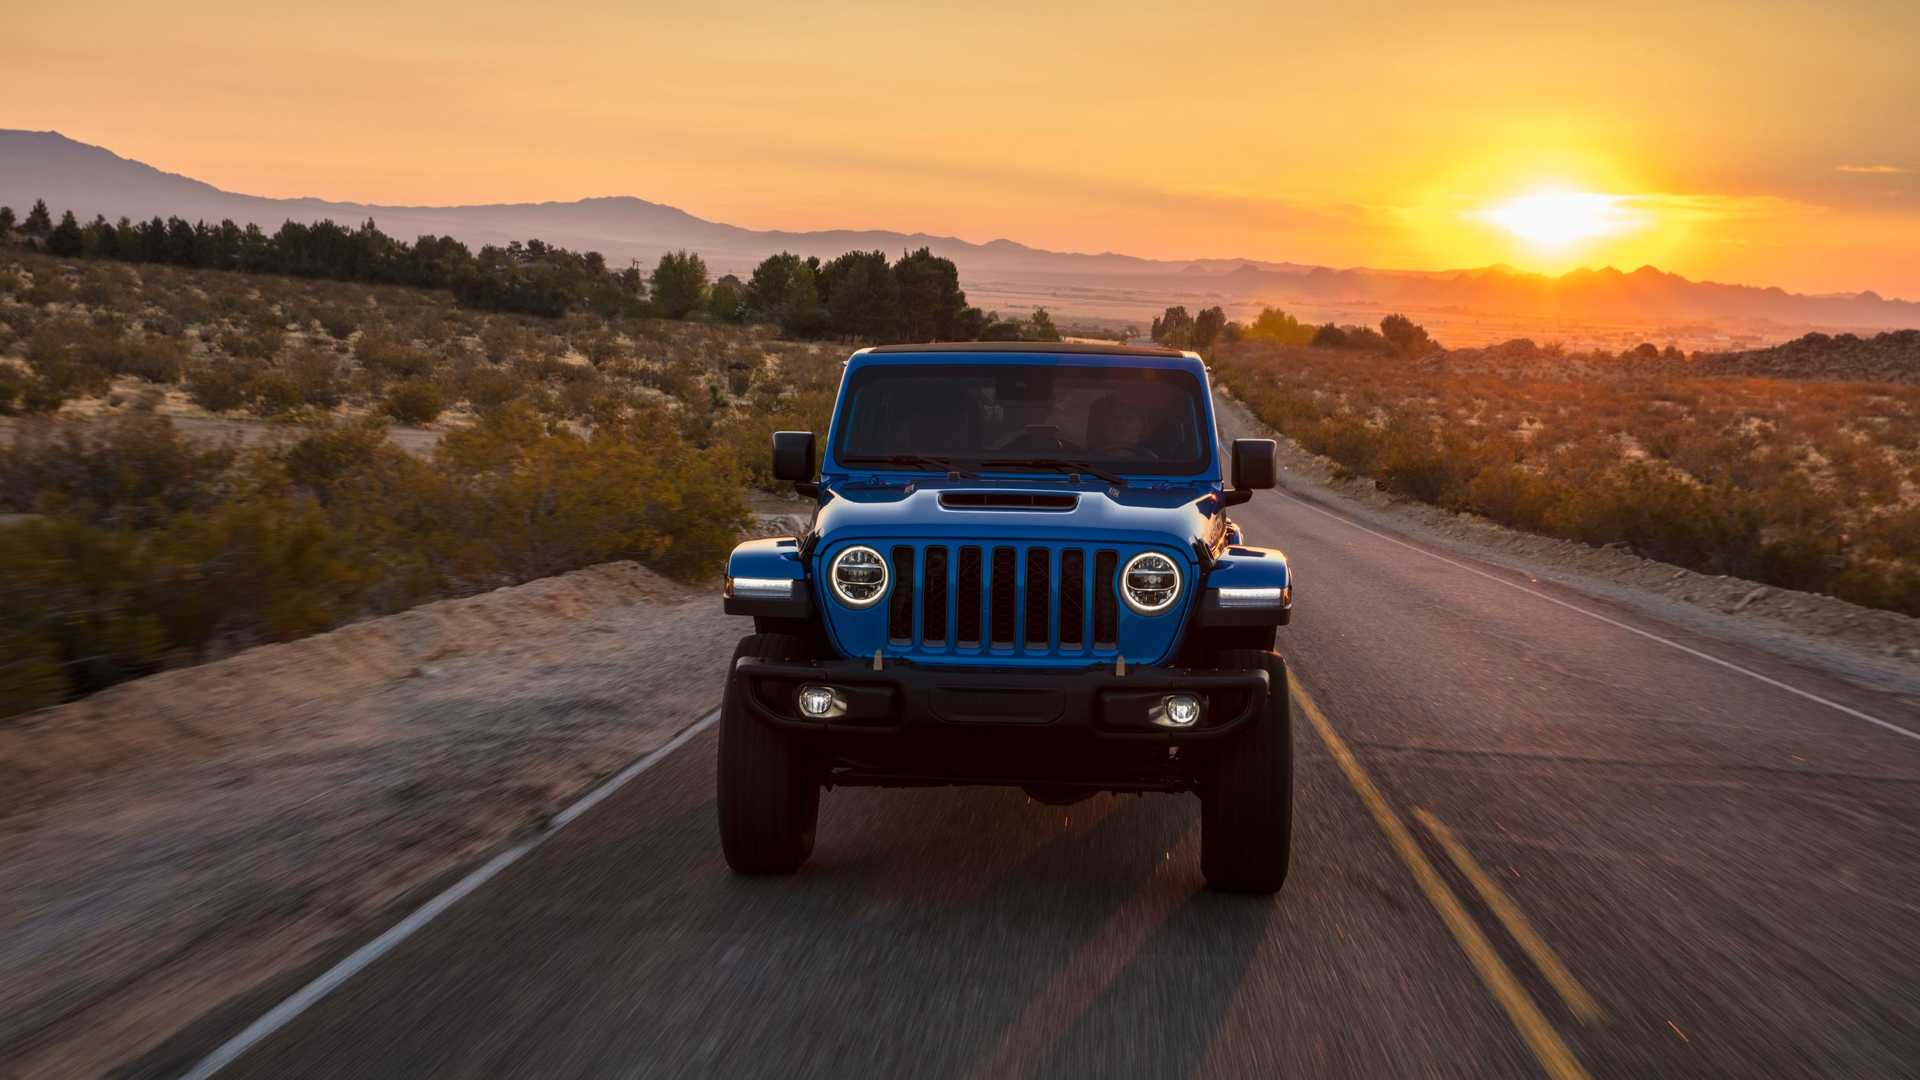 2021-jeep-wrangler-rubicon-392-front-view-10